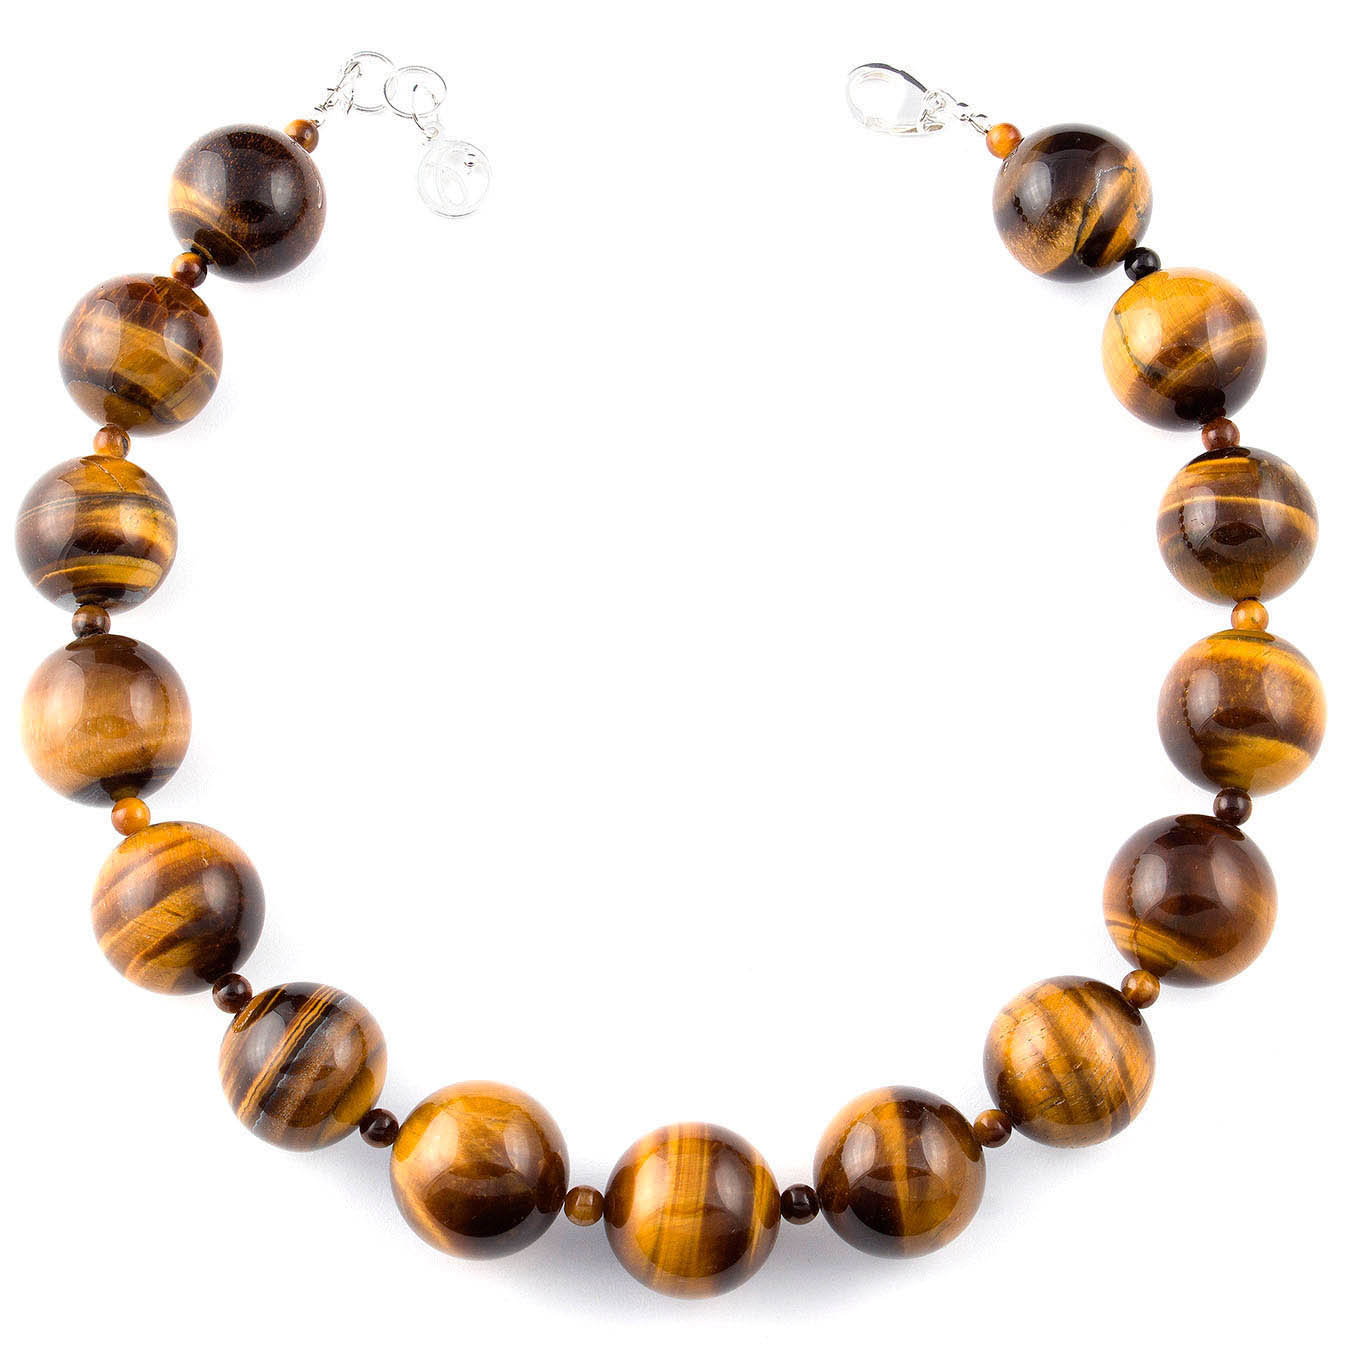 Handcrafted bold bead jewelry made with tiger eye gemstone